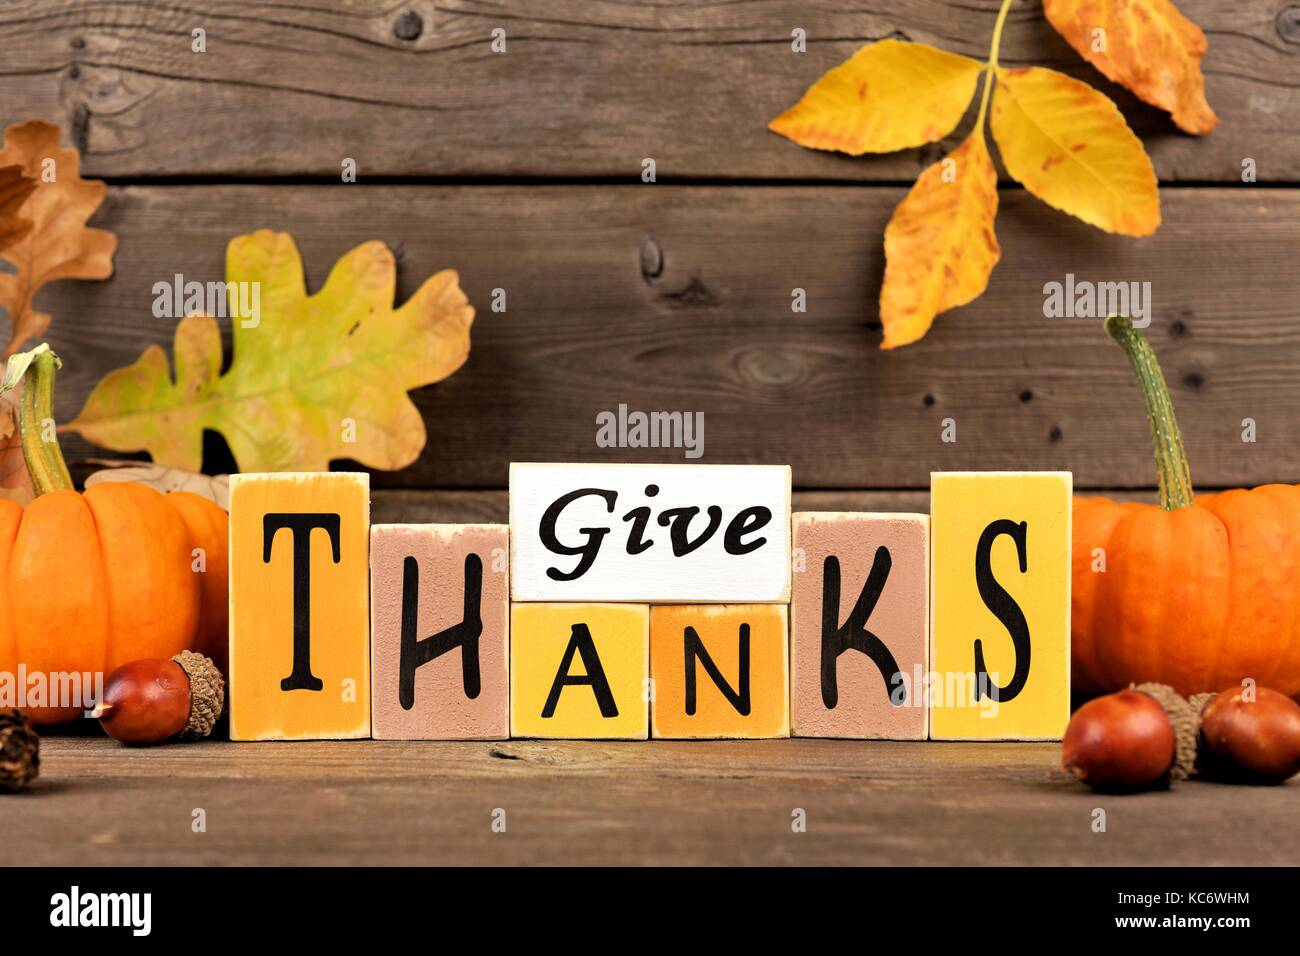 Give Thanks wood sign with pumpkins and leaves against a rustic wooden background - Stock Image